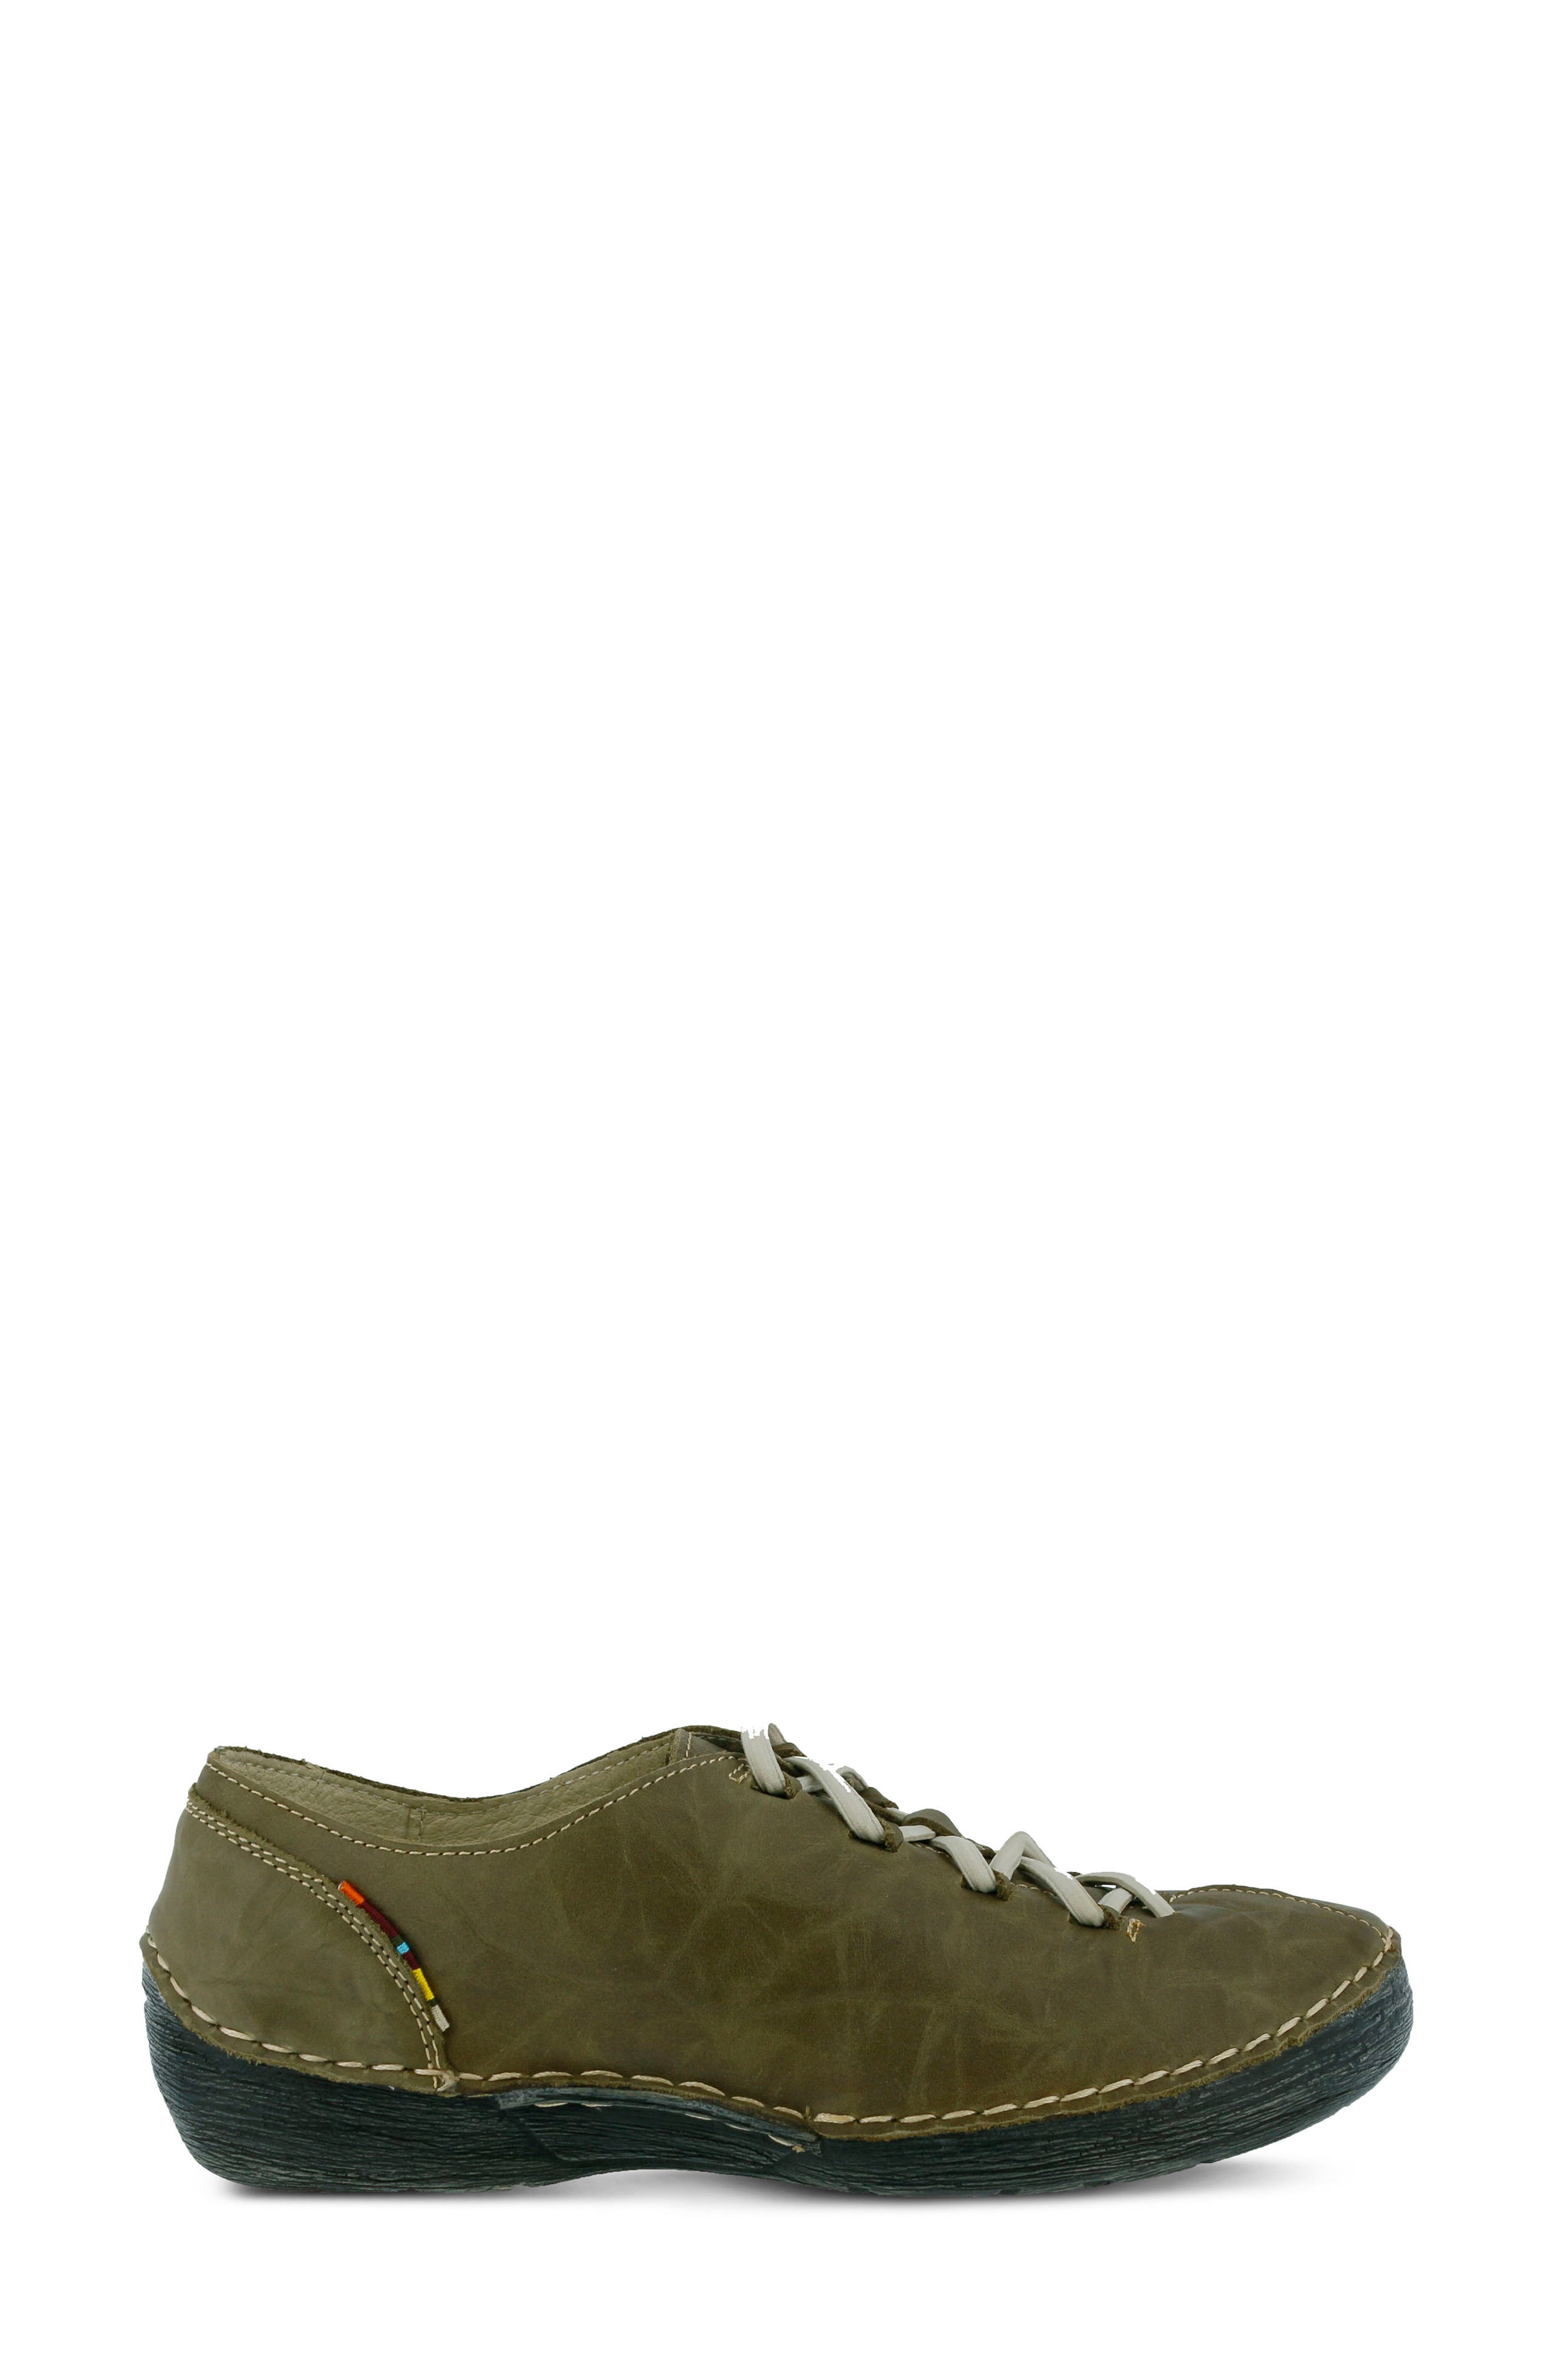 Carhop Sneaker,                             Alternate thumbnail 2, color,                             Olive Green Leather